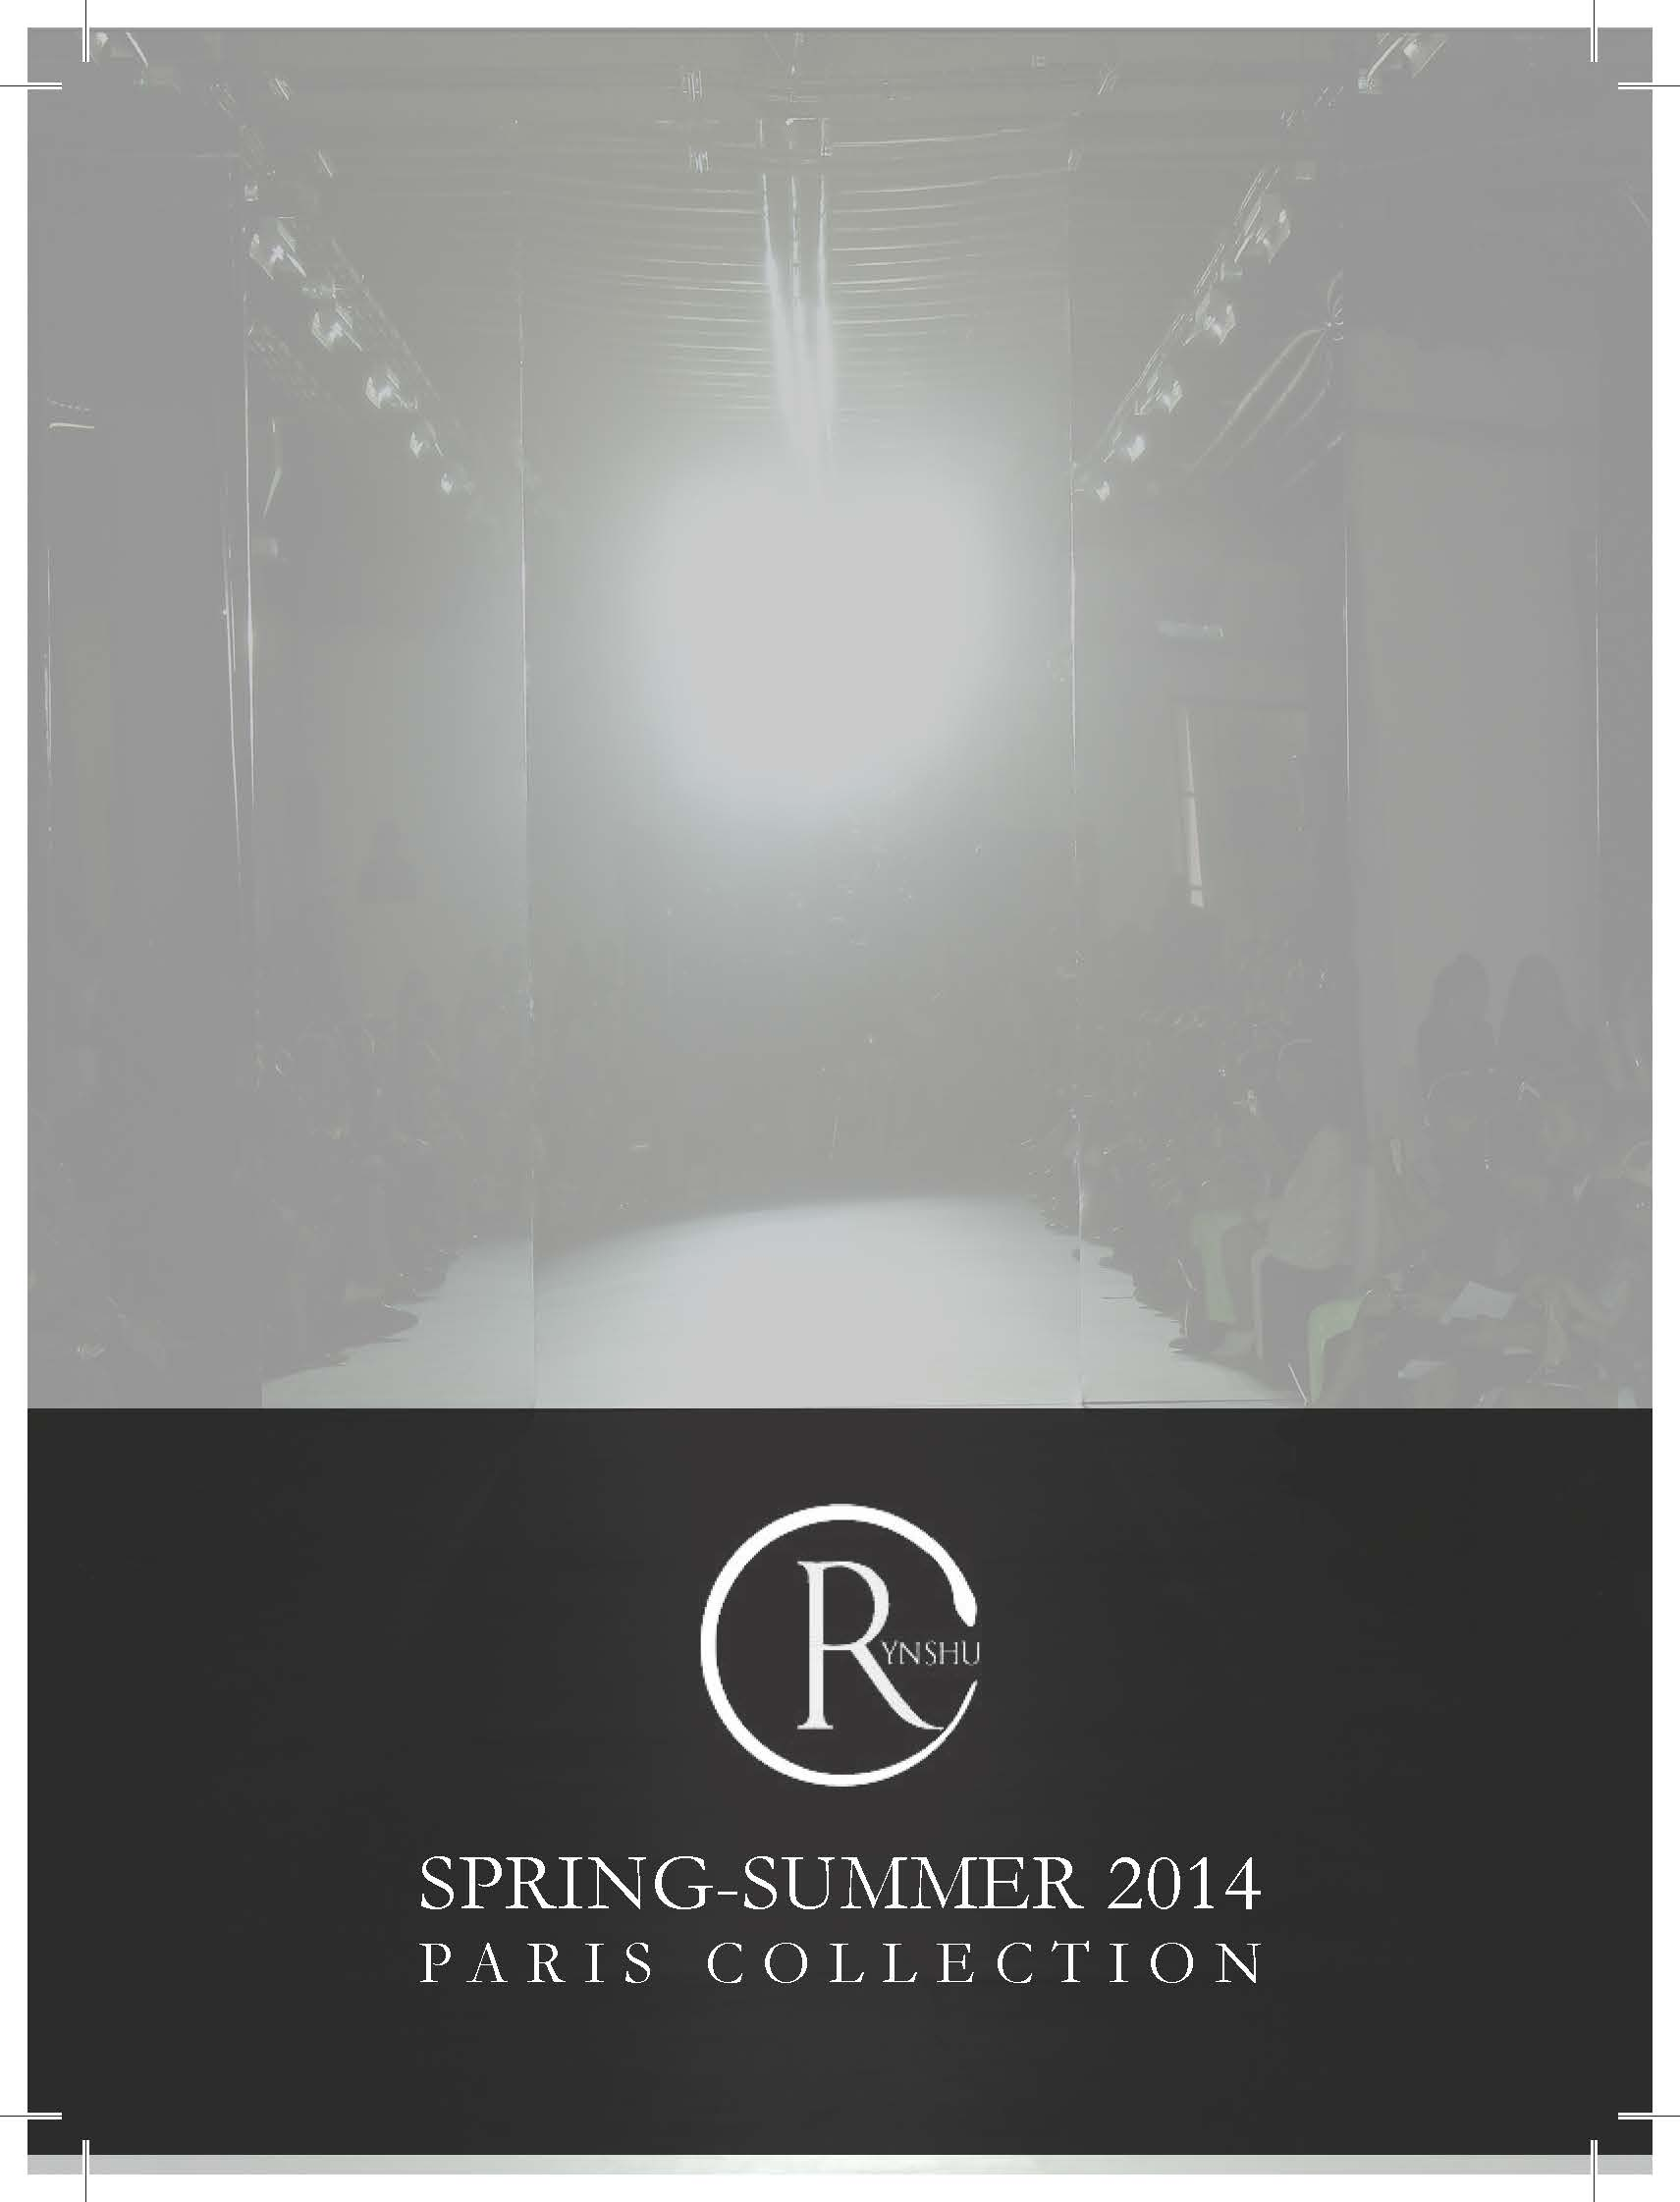 Motorcycle-Trend-in-Rynshu-Spring-Summer-2014-Collection-1